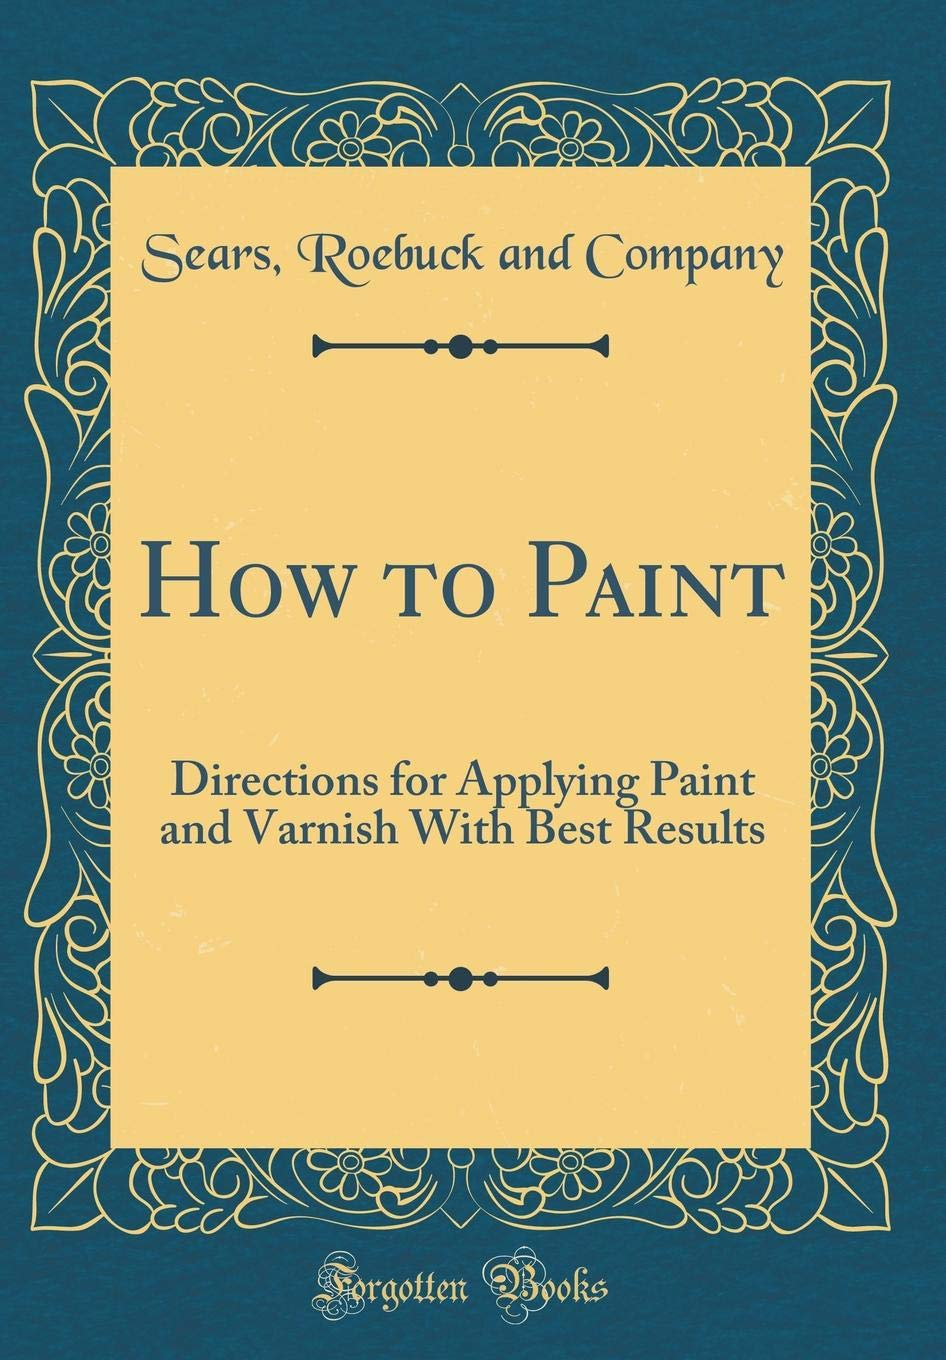 How to Paint: Directions for Applying Paint and Varnish With Best Results (Classic Reprint) pdf